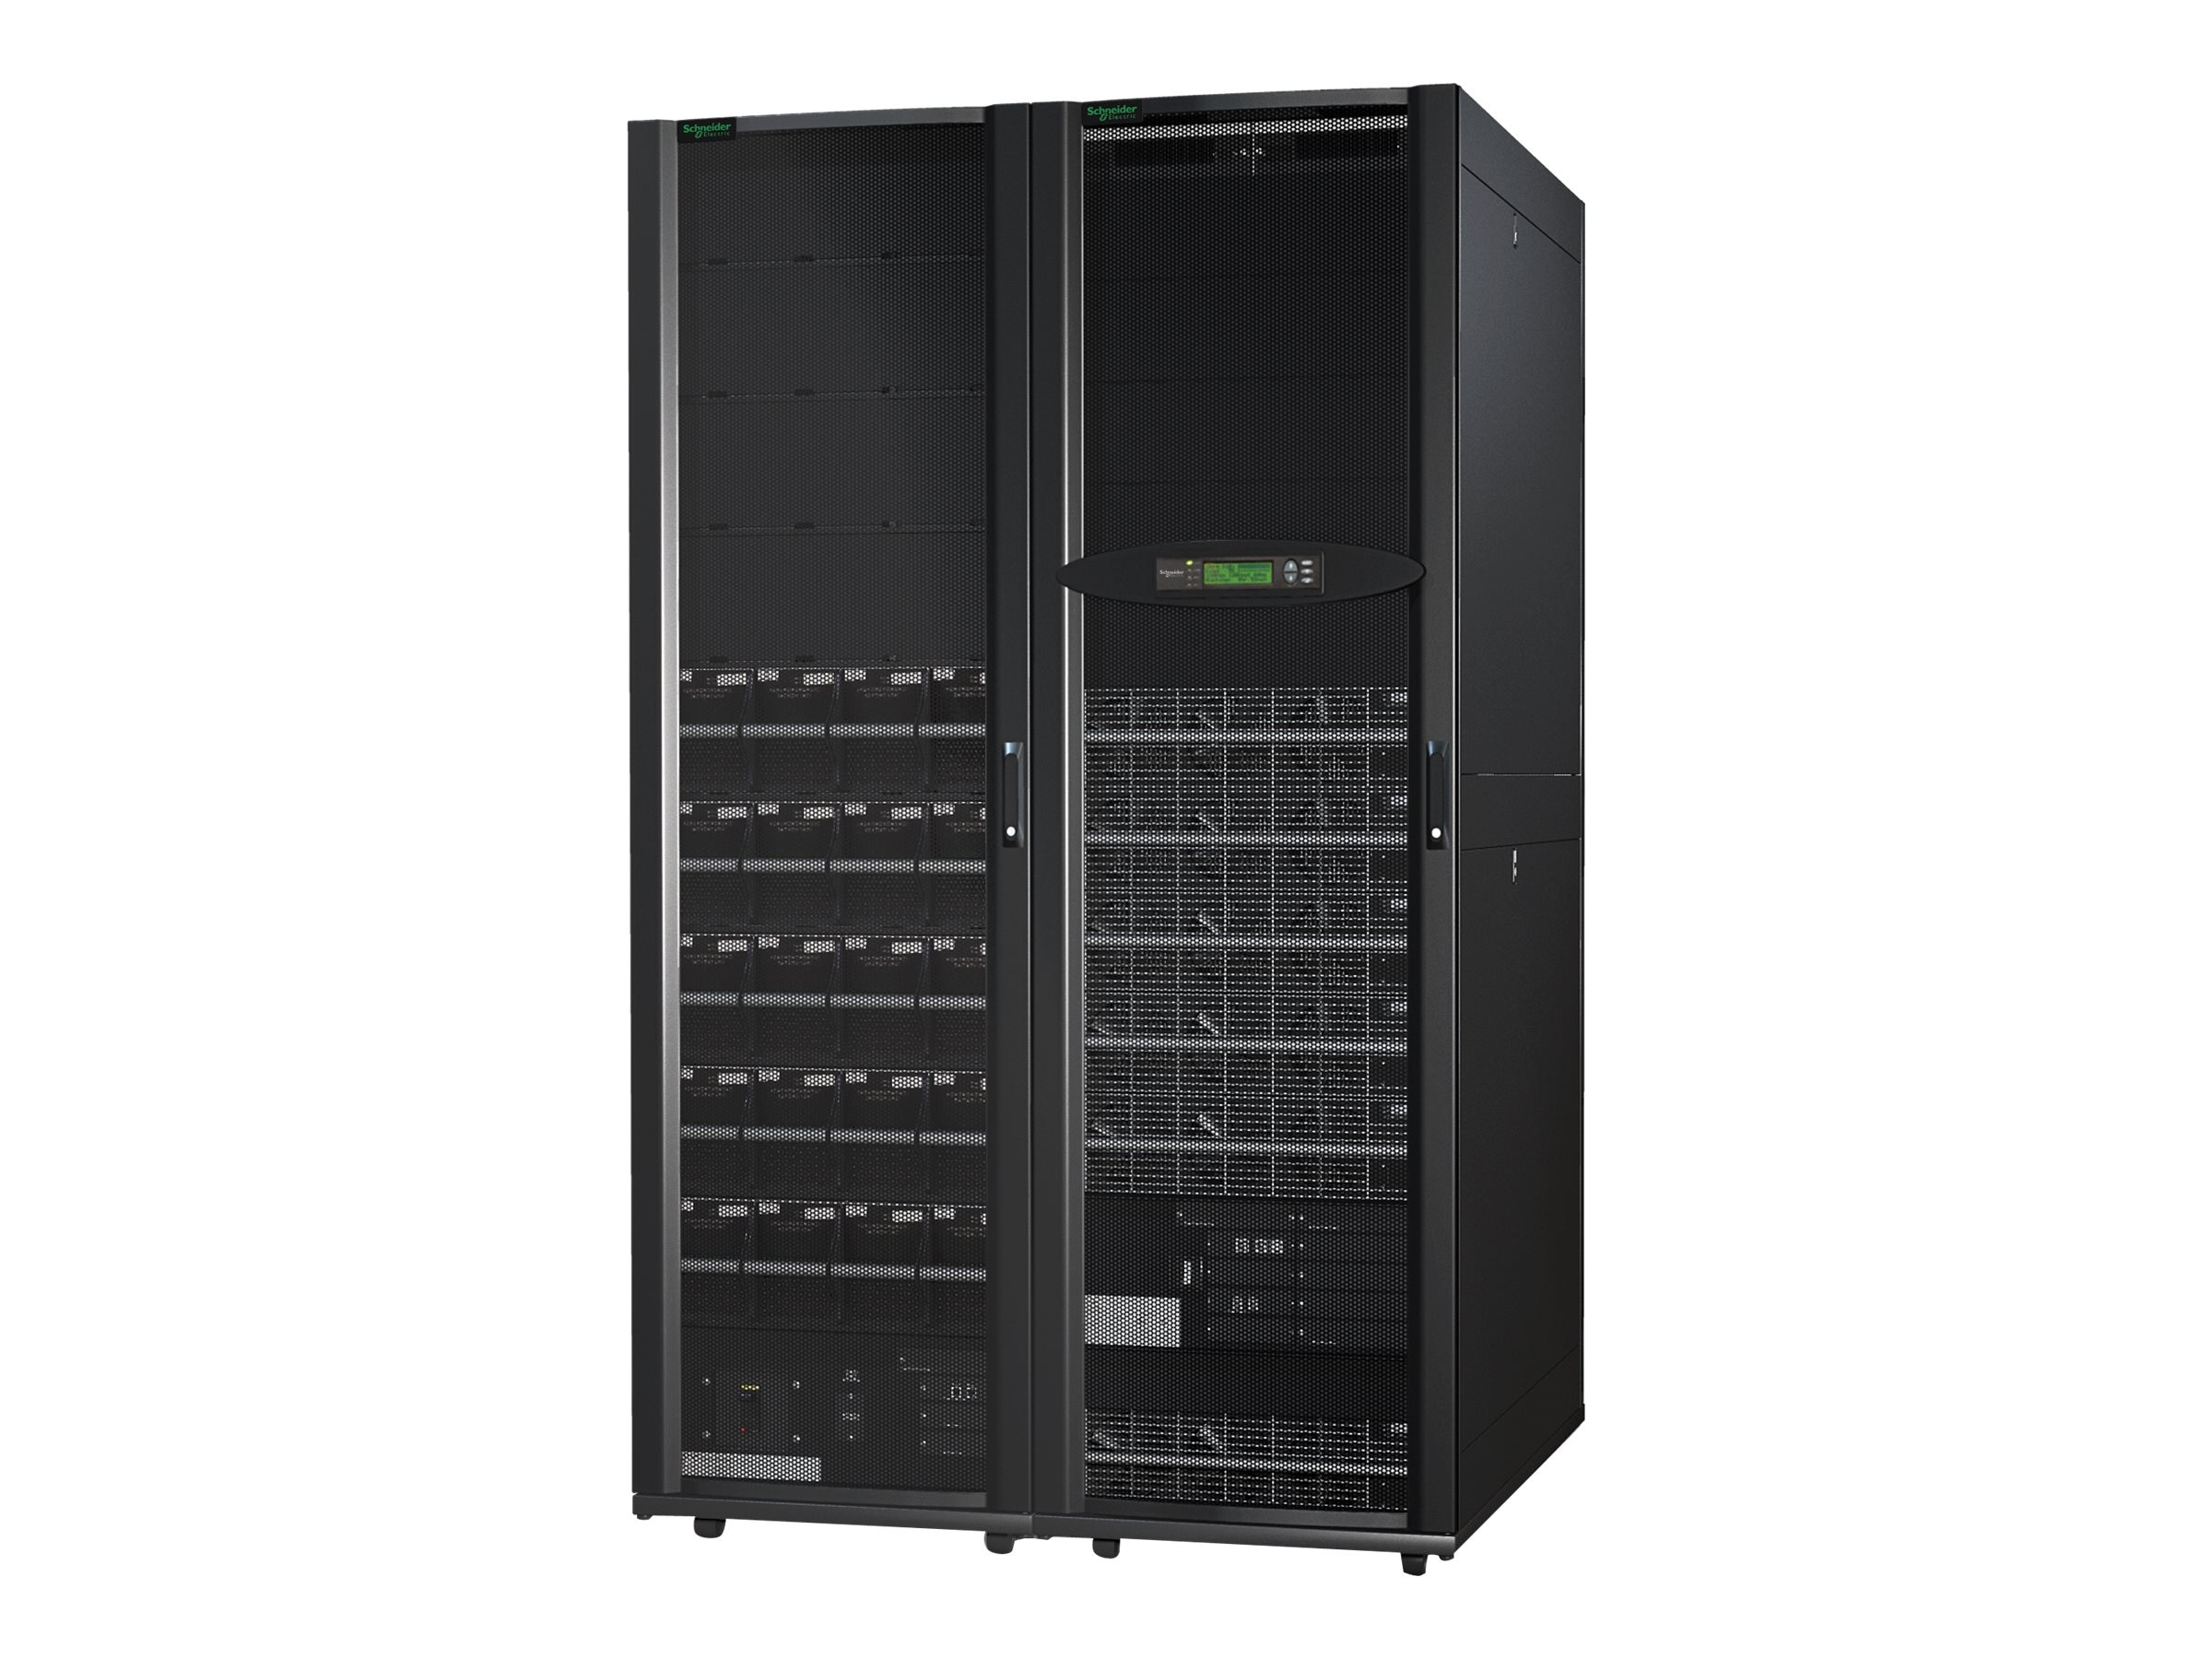 APC Symmetra PX 50kW Scalable to 100kW, 208V with Startup, SY50K100F, 12592066, Battery Backup/UPS